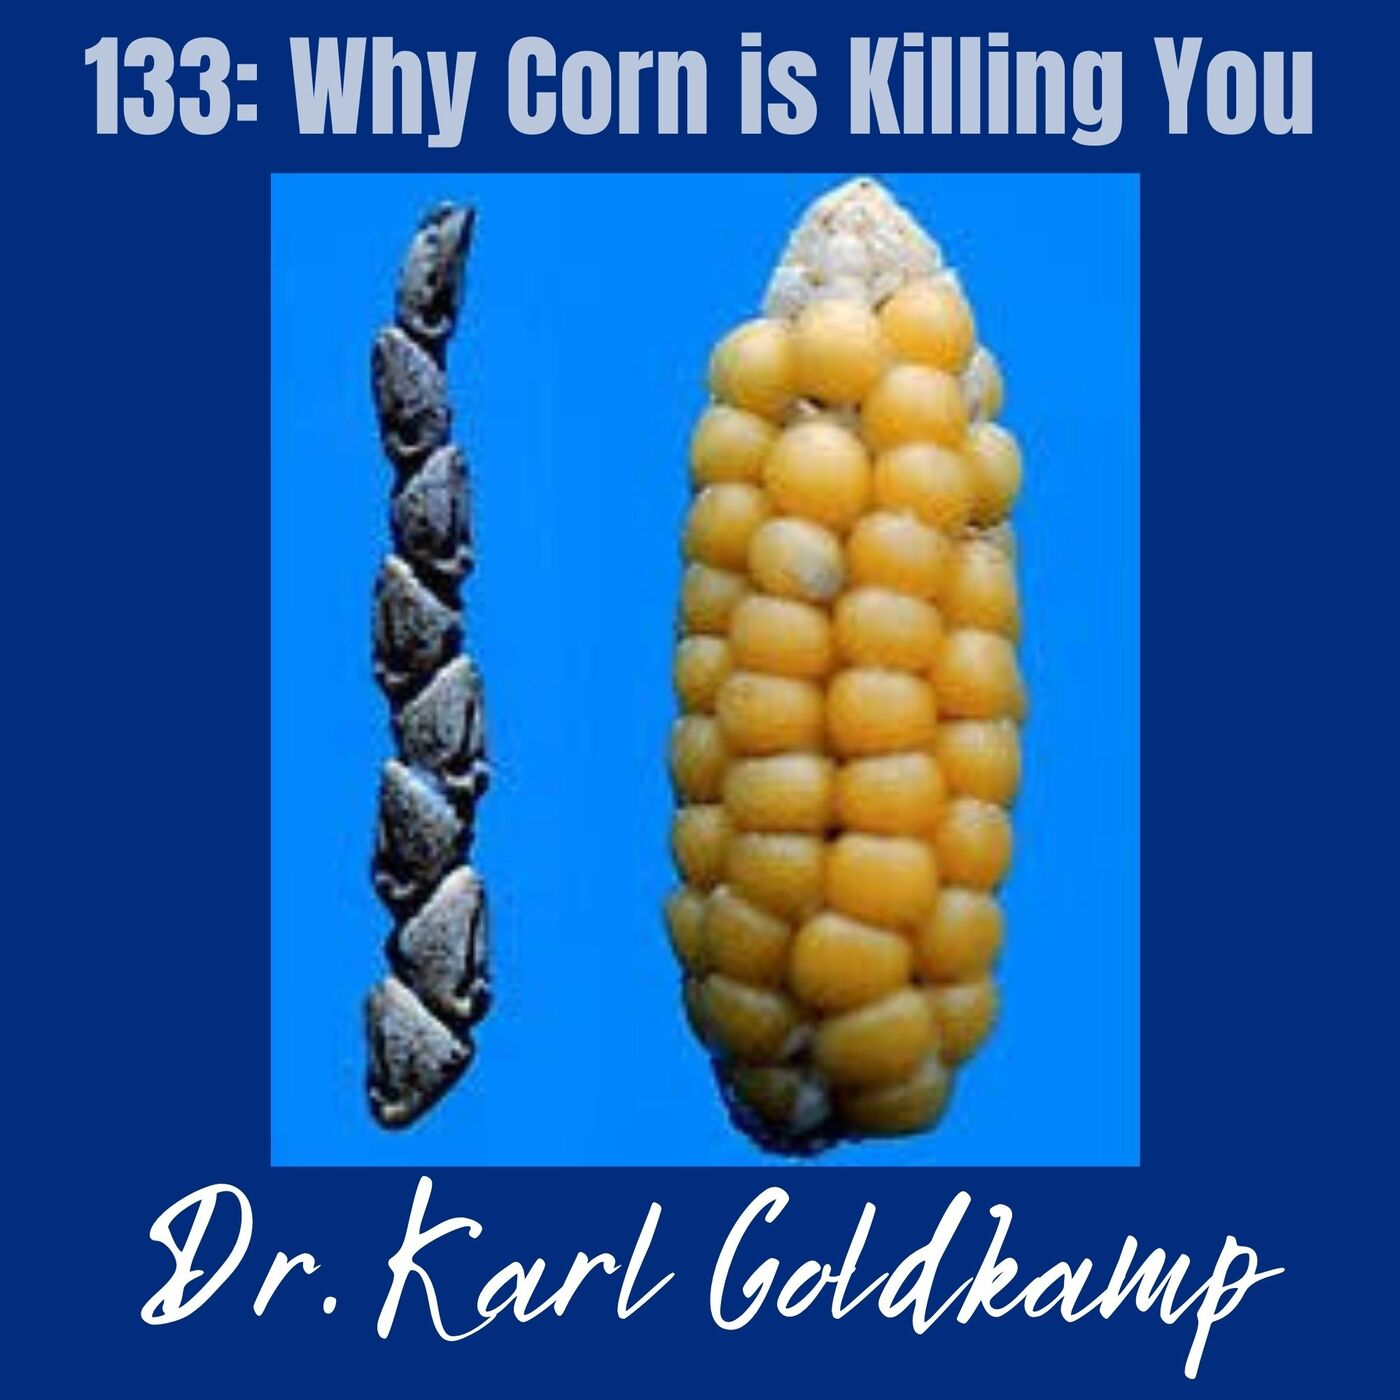 133: Why Corn is Killing You